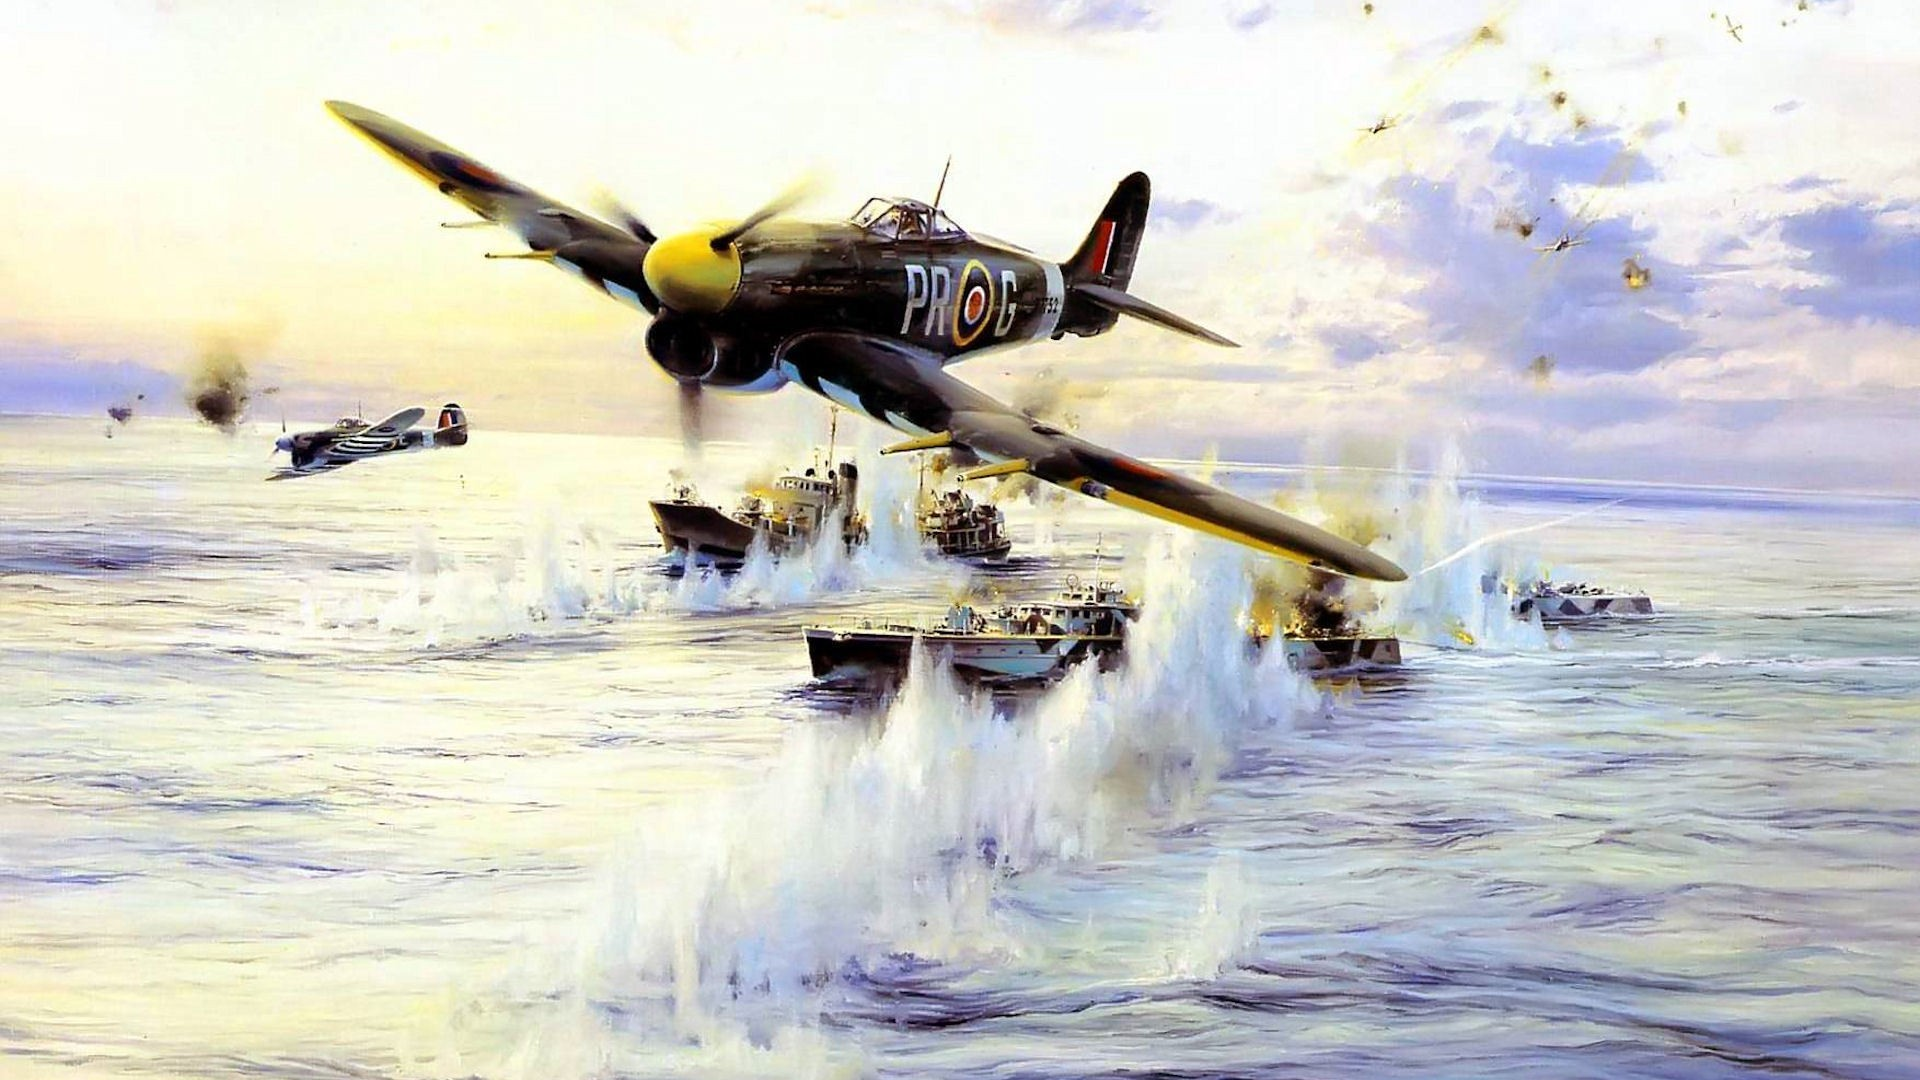 World War II, Airplane, Aircraft, Hawker Typhoon, Military, Military  Aircraft, D Day Wallpapers HD / Desktop and Mobile Backgrounds